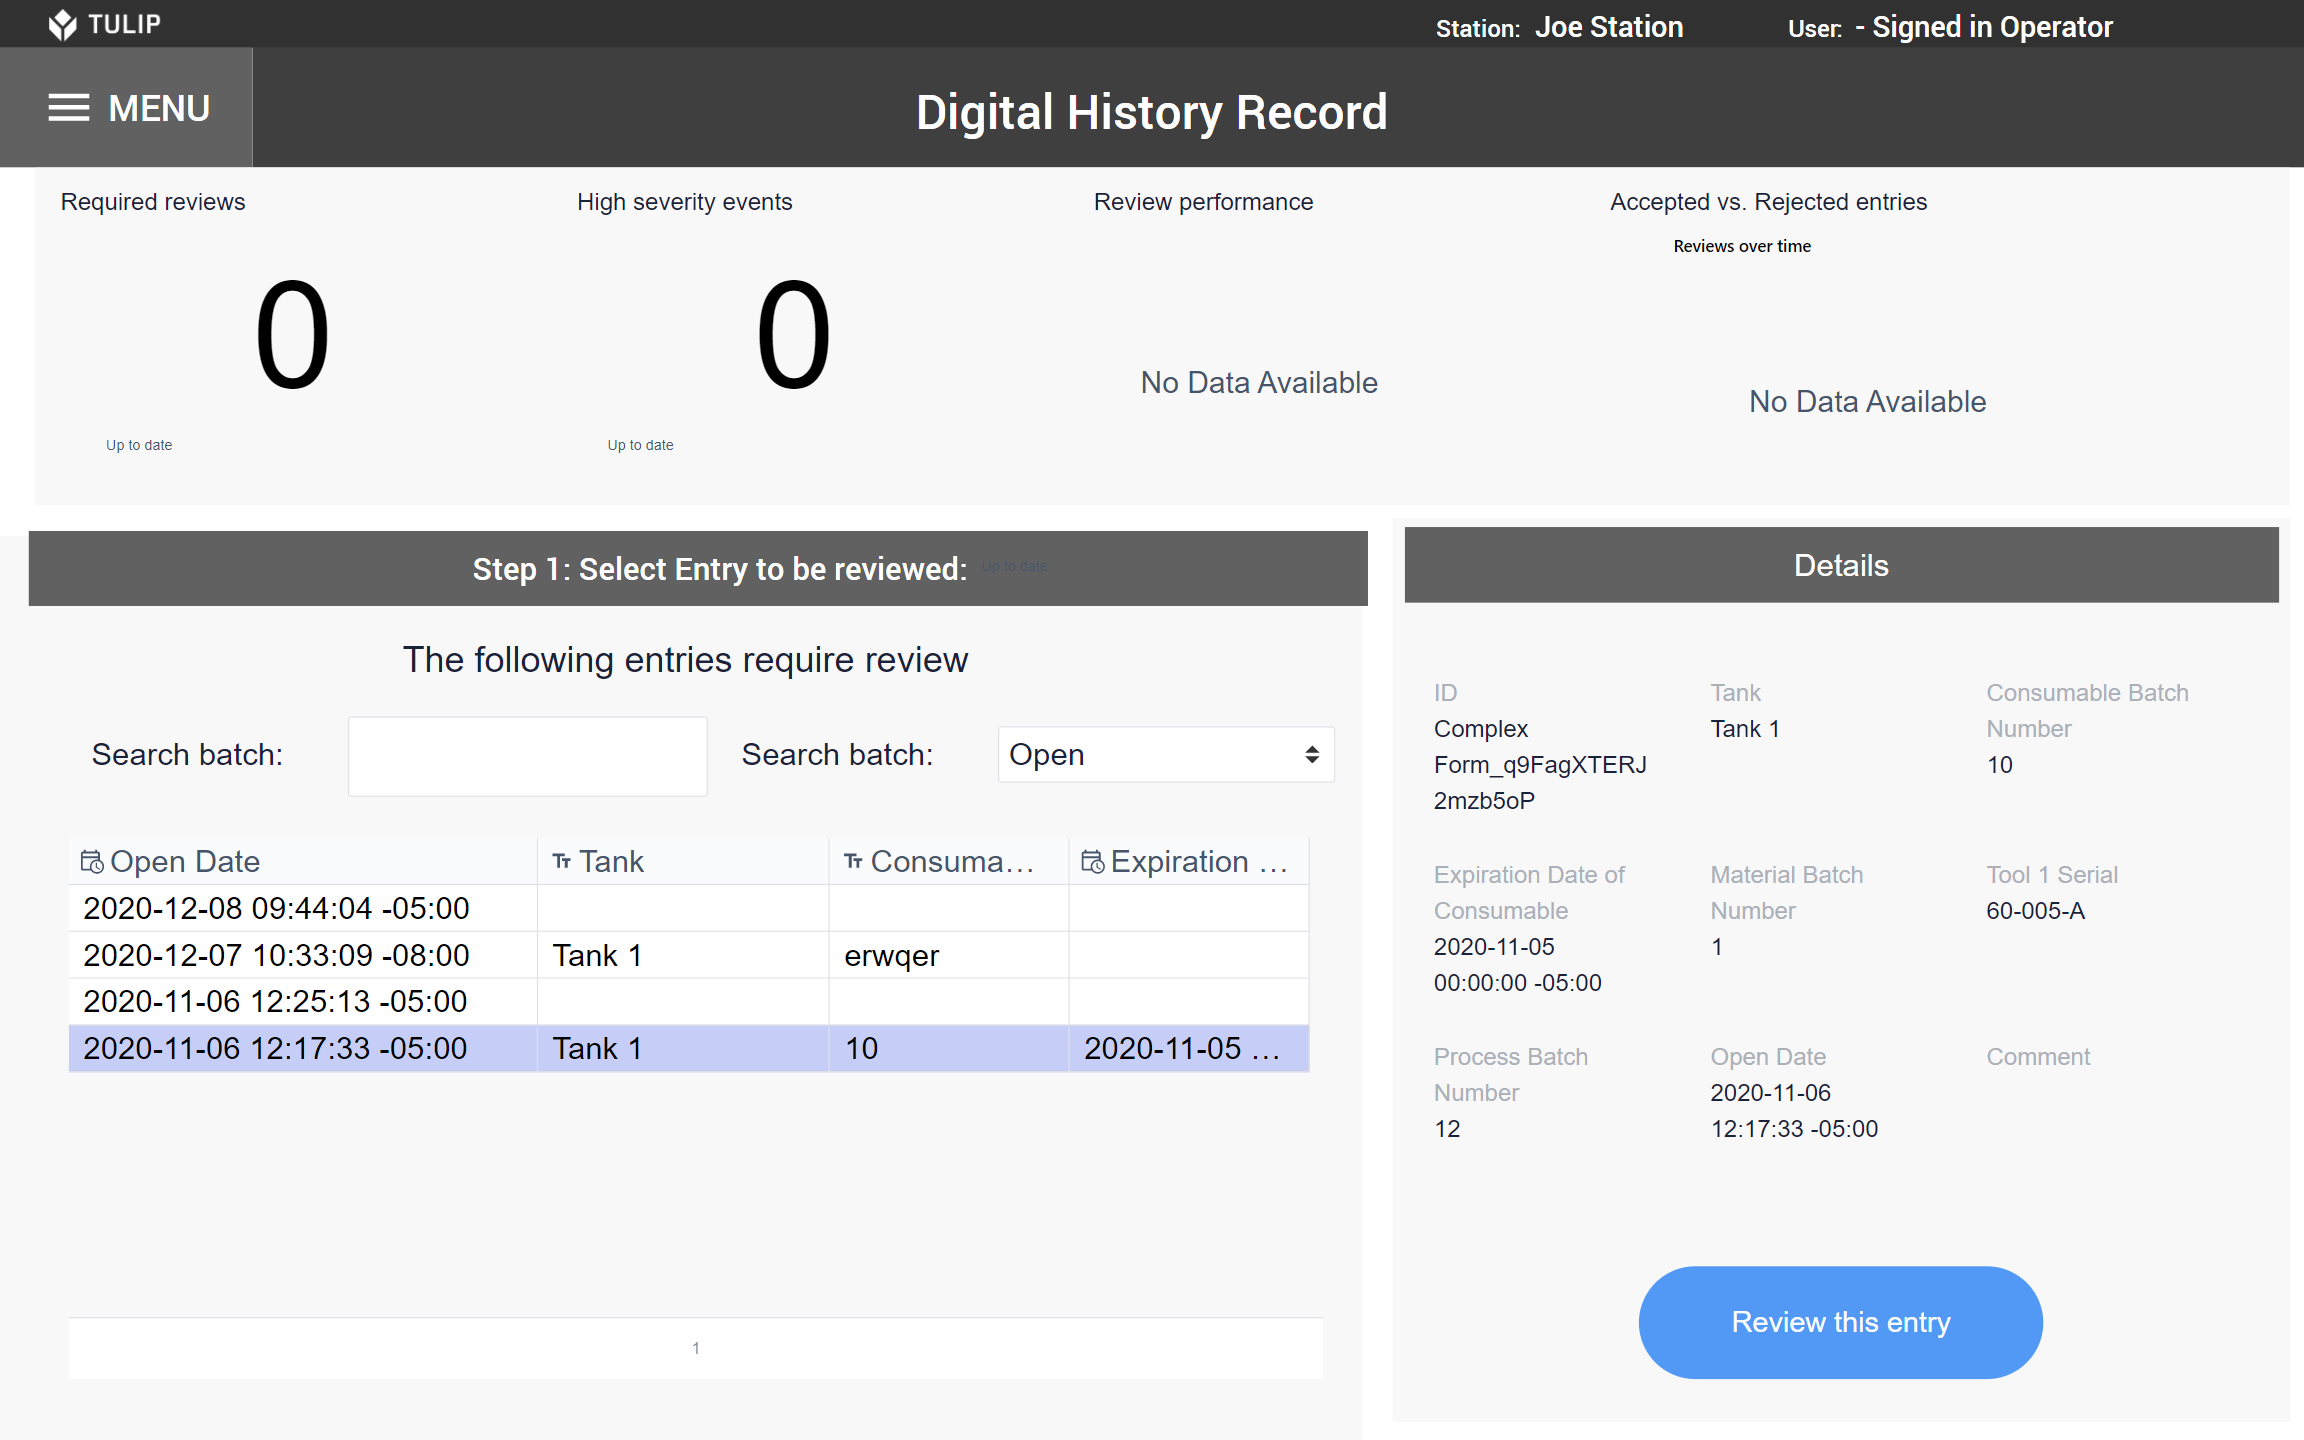 Image of Digital History Record app